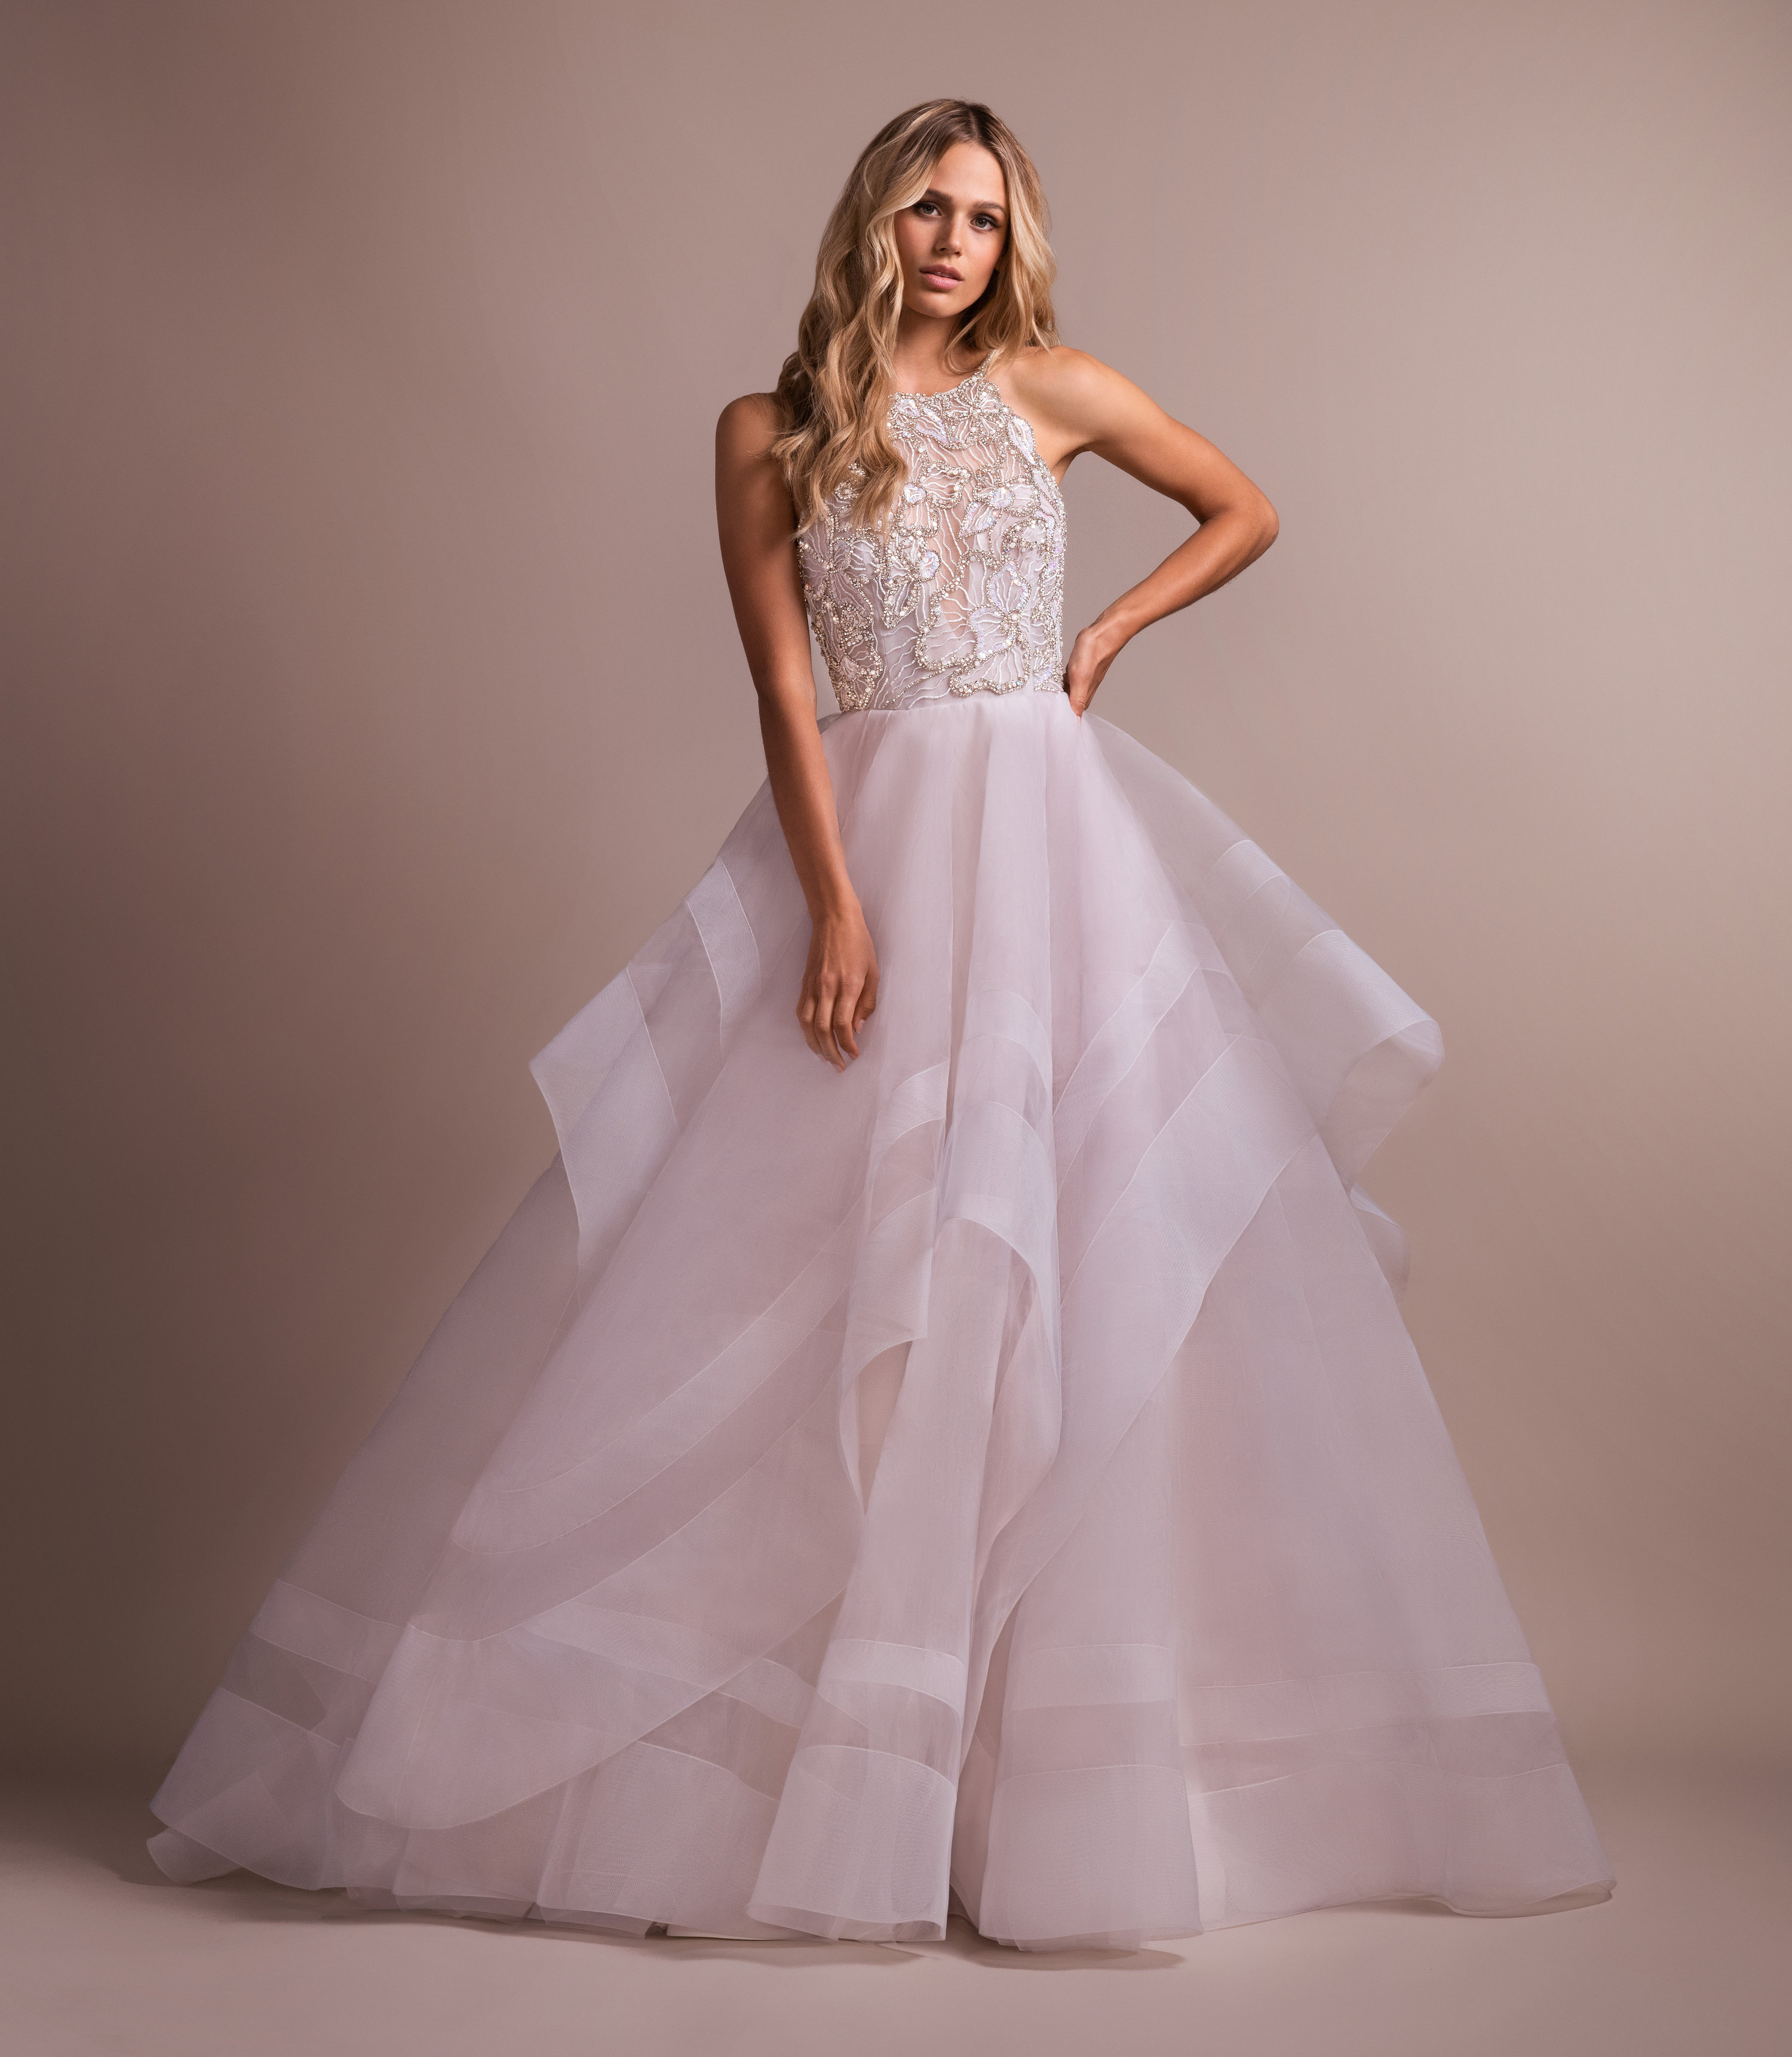 Blush Ball Gown With Horsehair Skirt